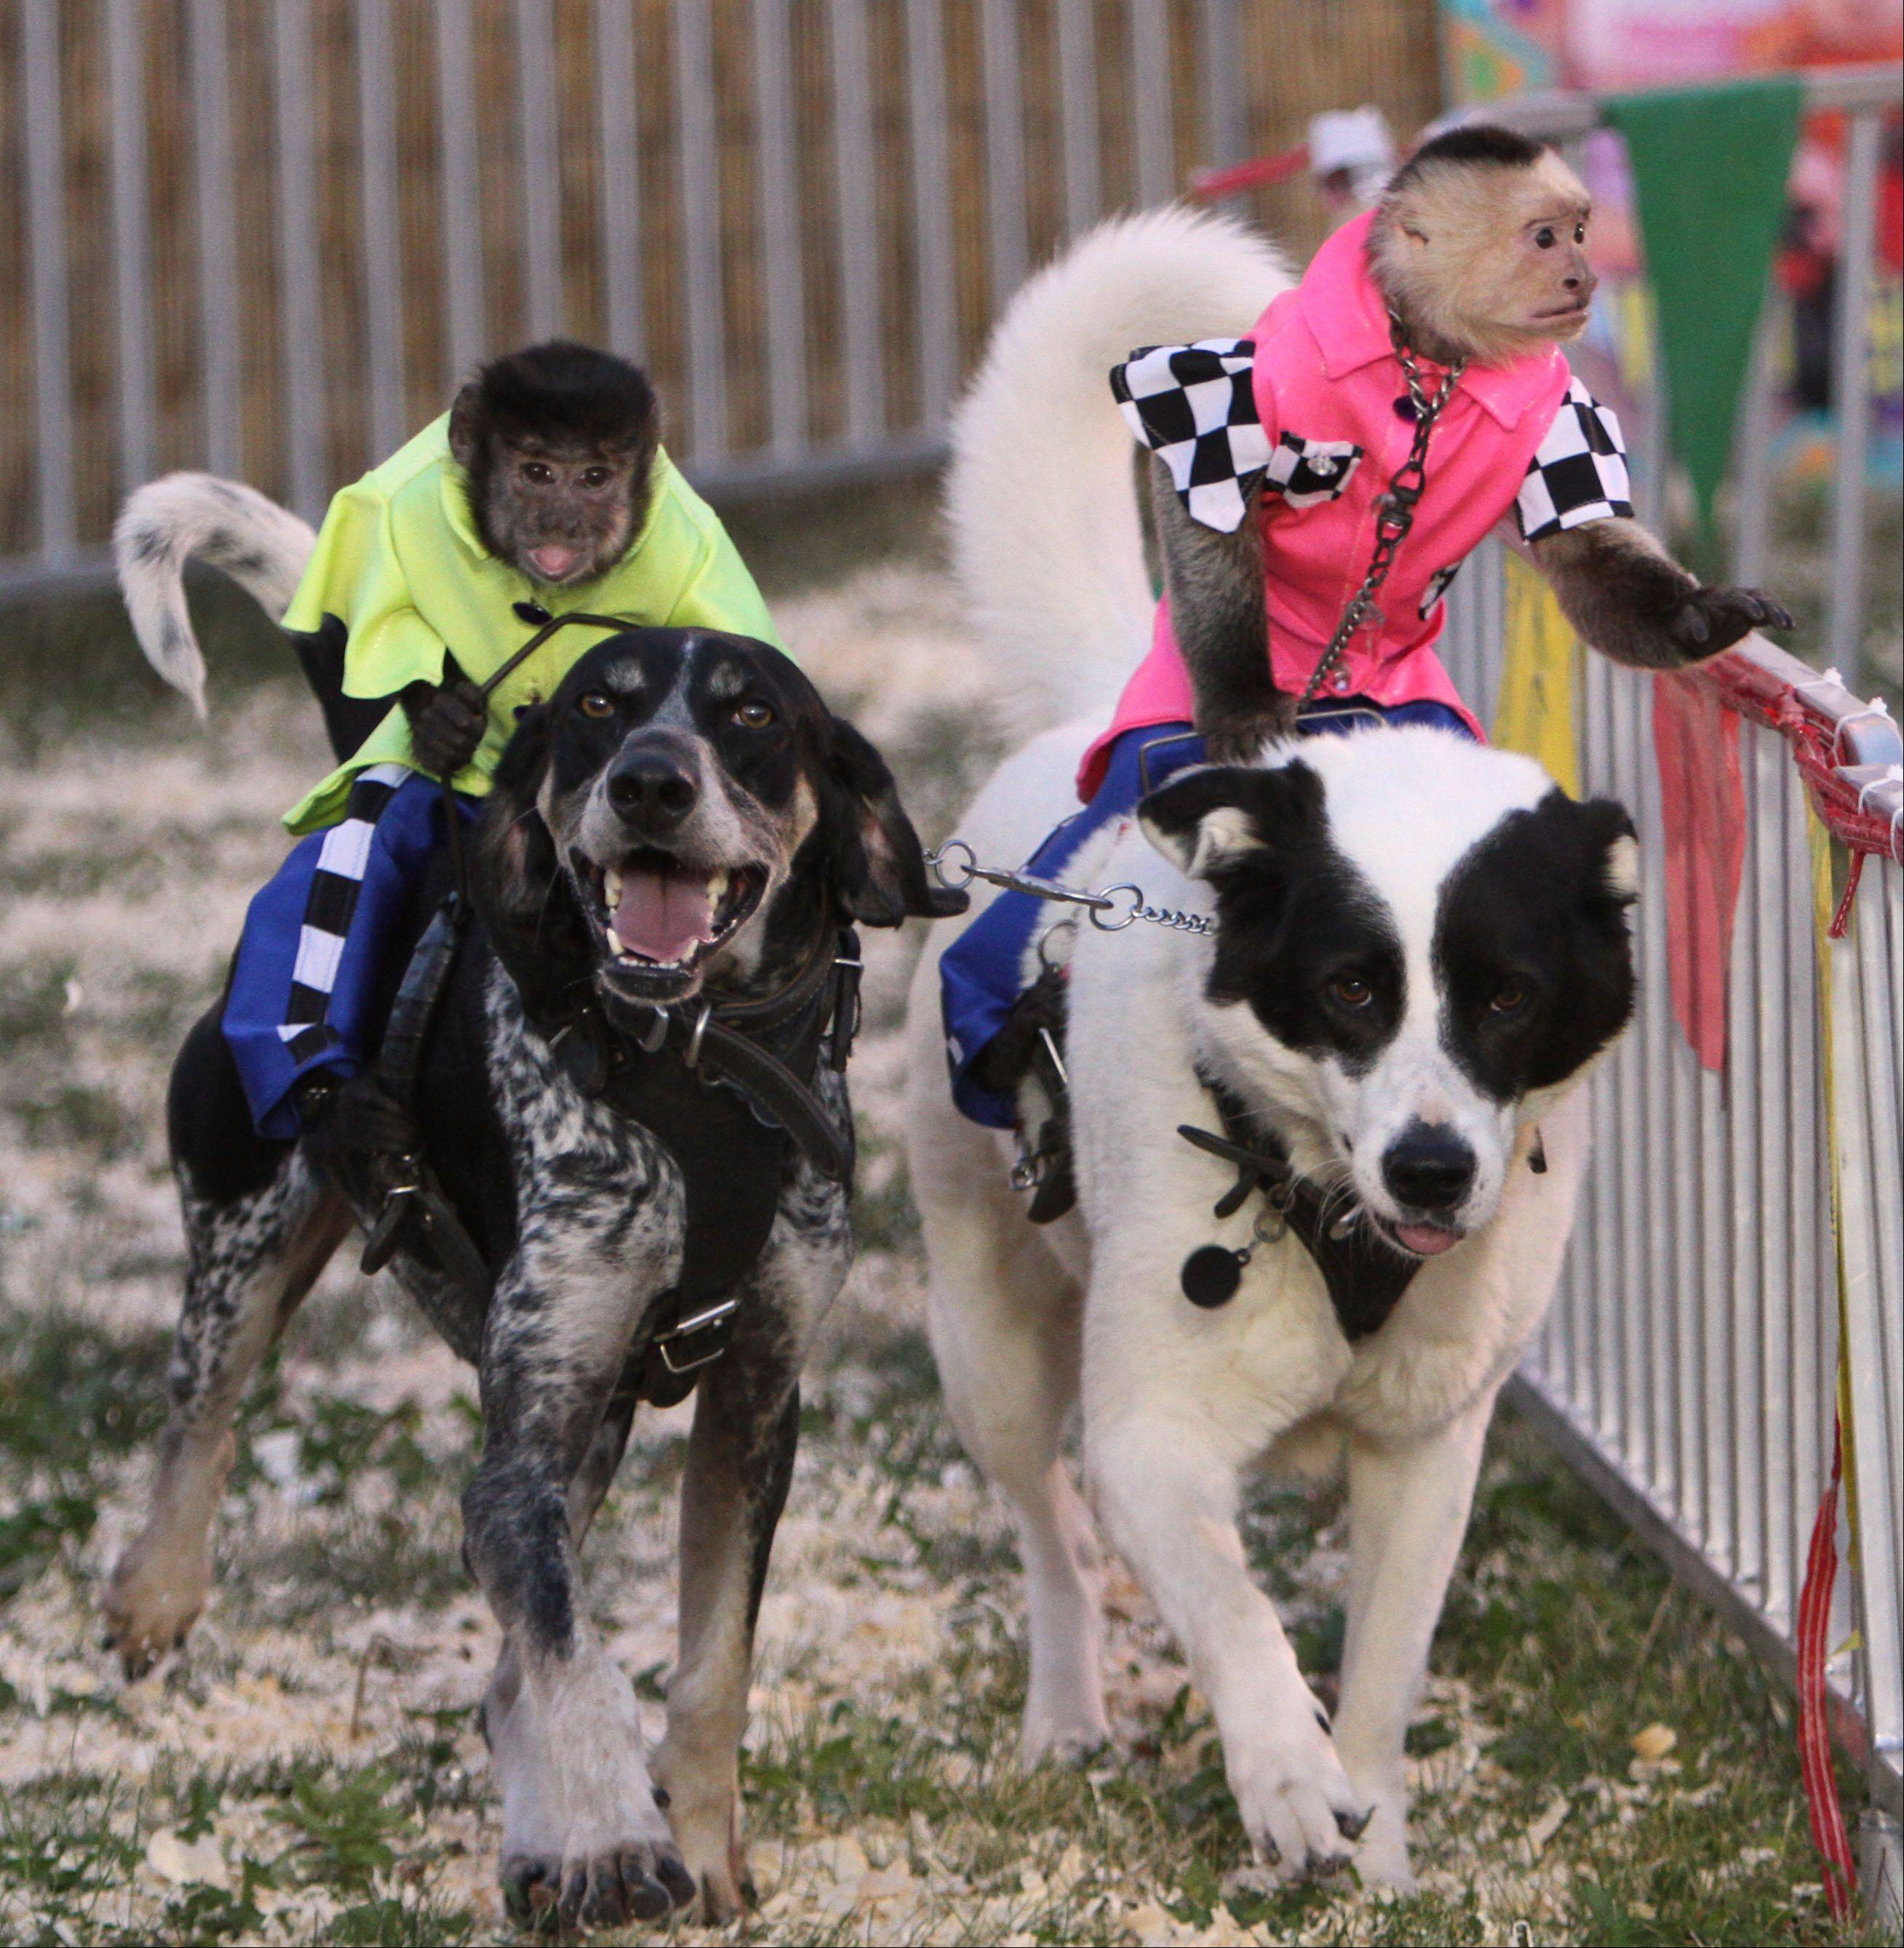 Burt rides Sasha, left, and BoBo rides Scooby Blue during the Banana Derby at the Lake County Fair in Grayslake Wednesday.